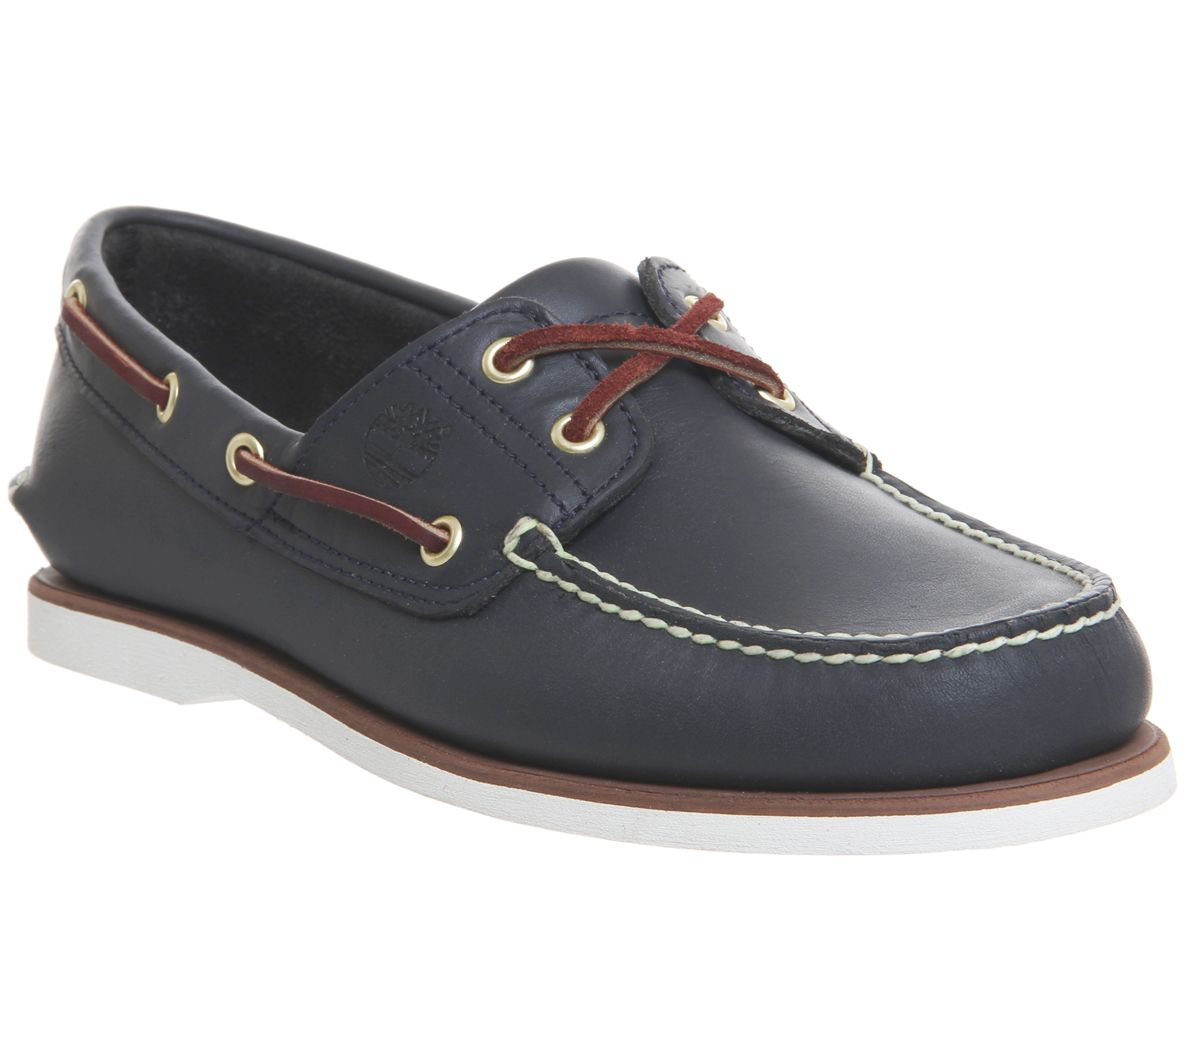 7f9e150c7a03 Timberland New Boat Shoes Navy Leather - Casual